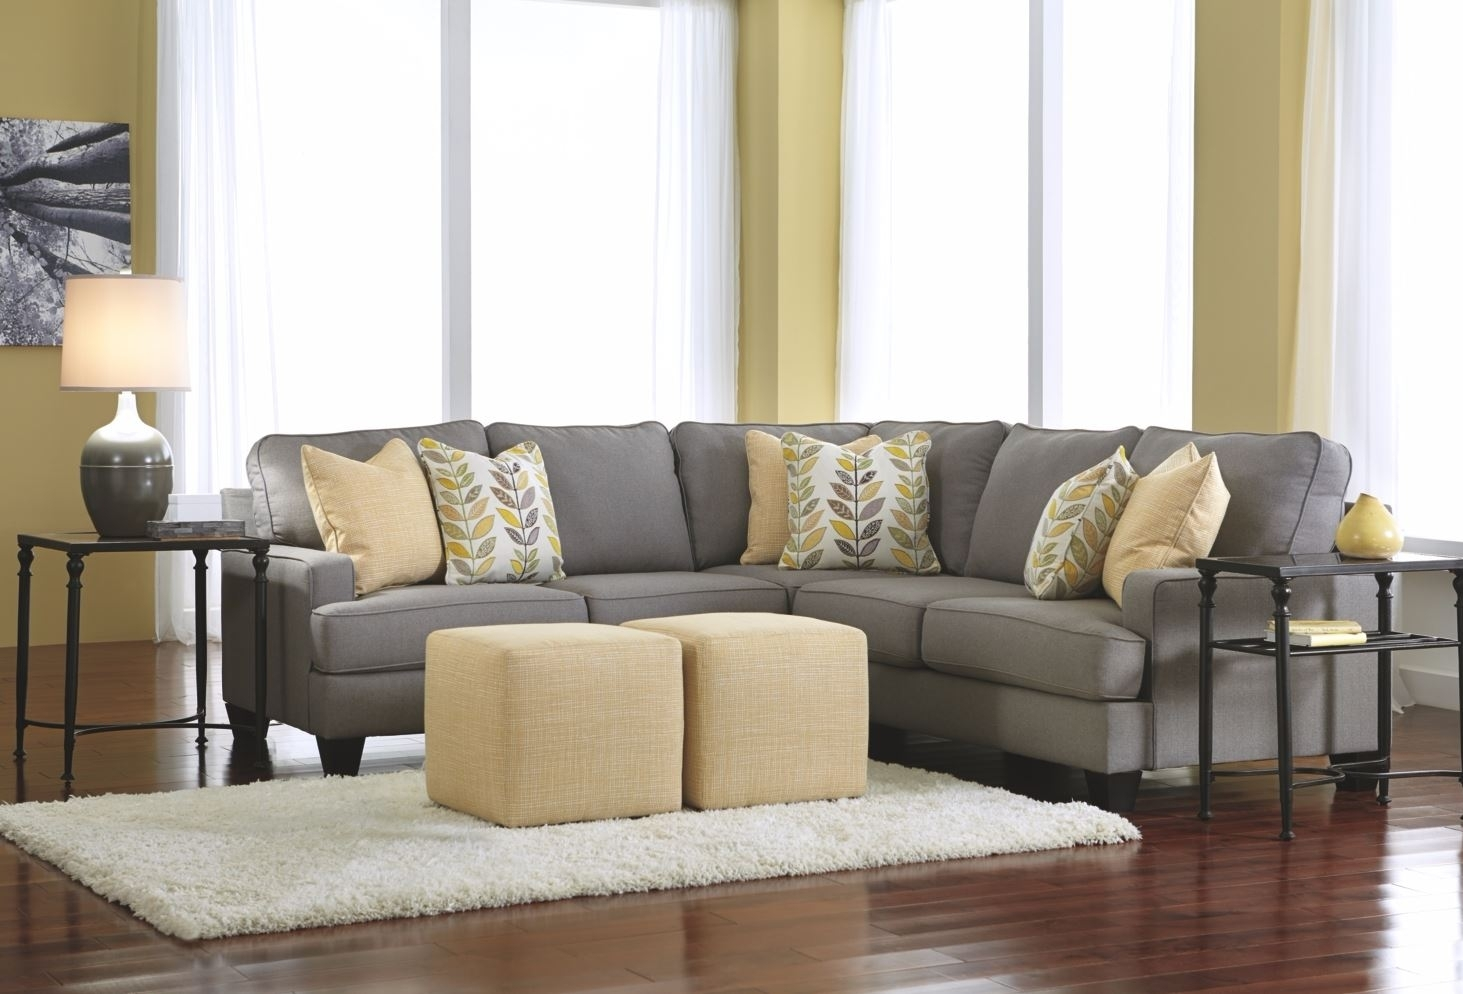 5 Tips For Getting The Sectional Of Your Dreams | Ashley Homestore with regard to Karen 3 Piece Sectionals (Image 2 of 30)